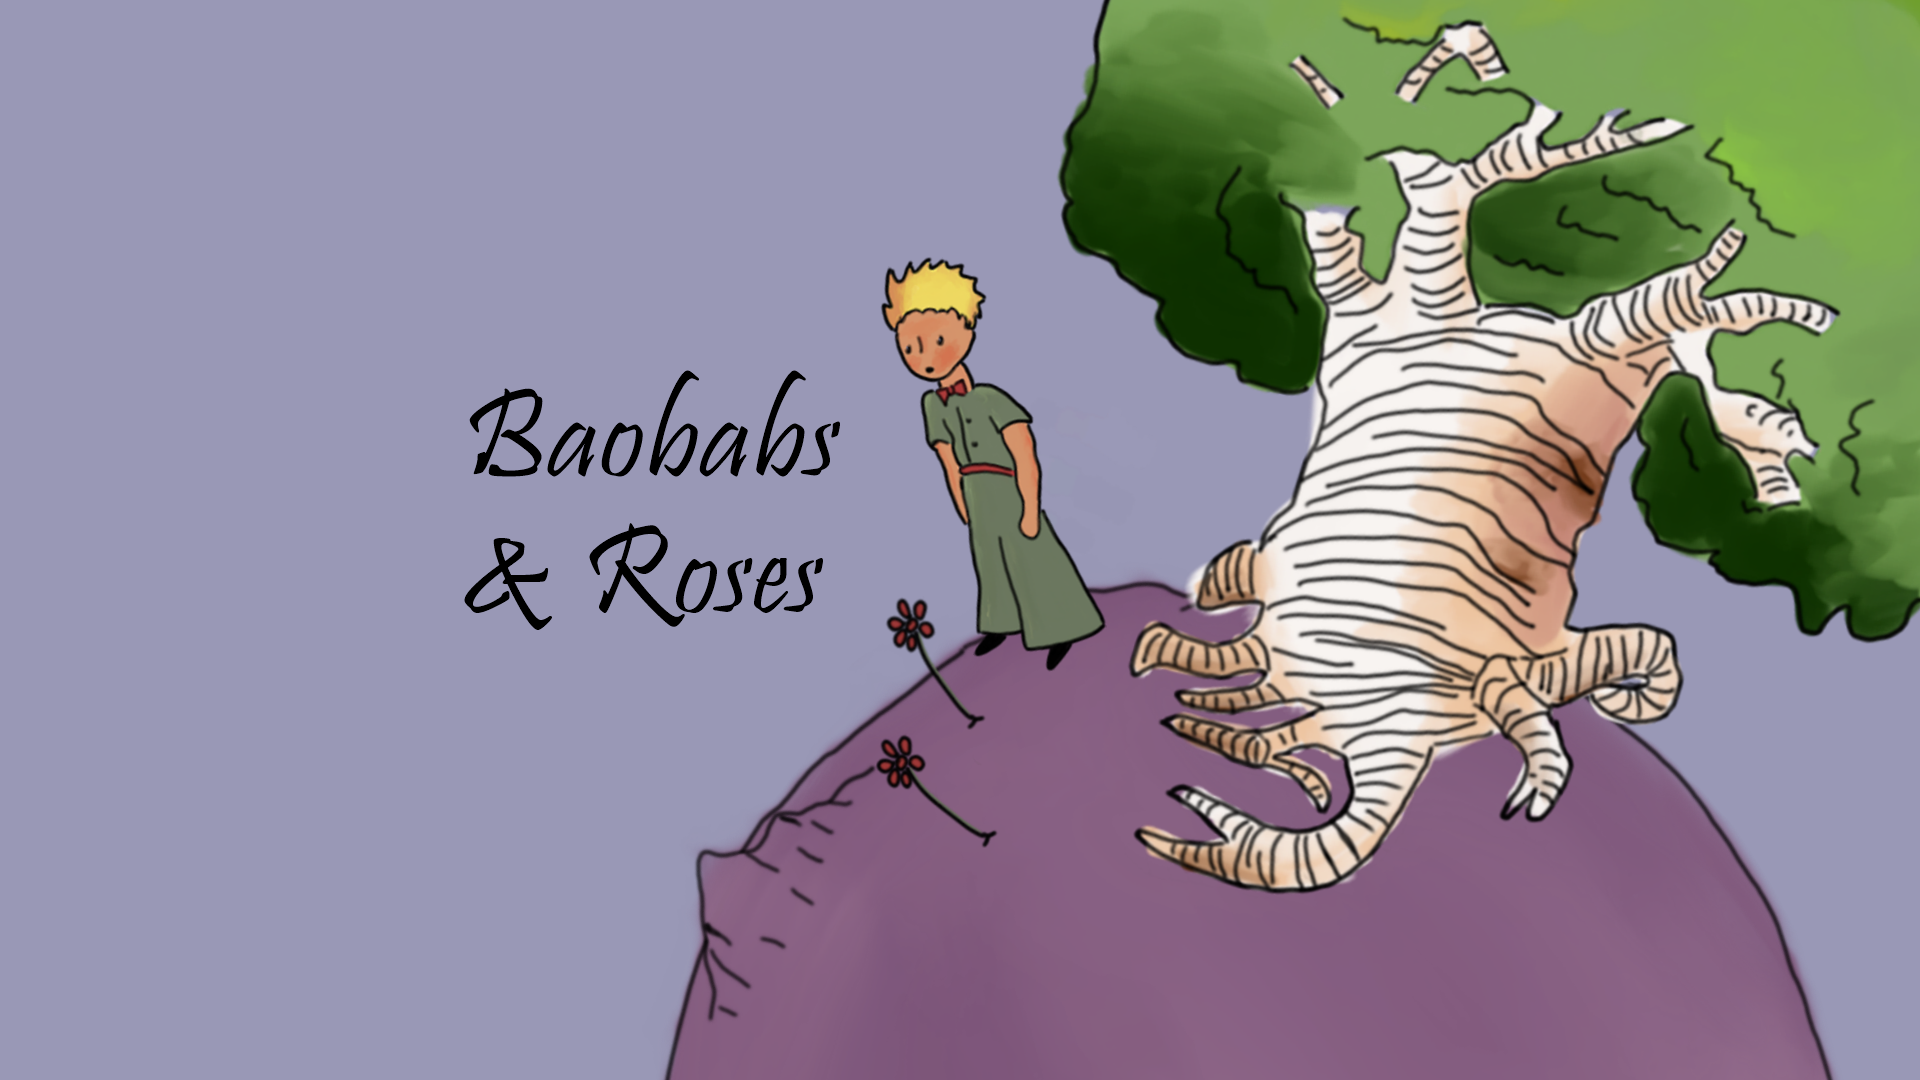 Baobabs and Roses